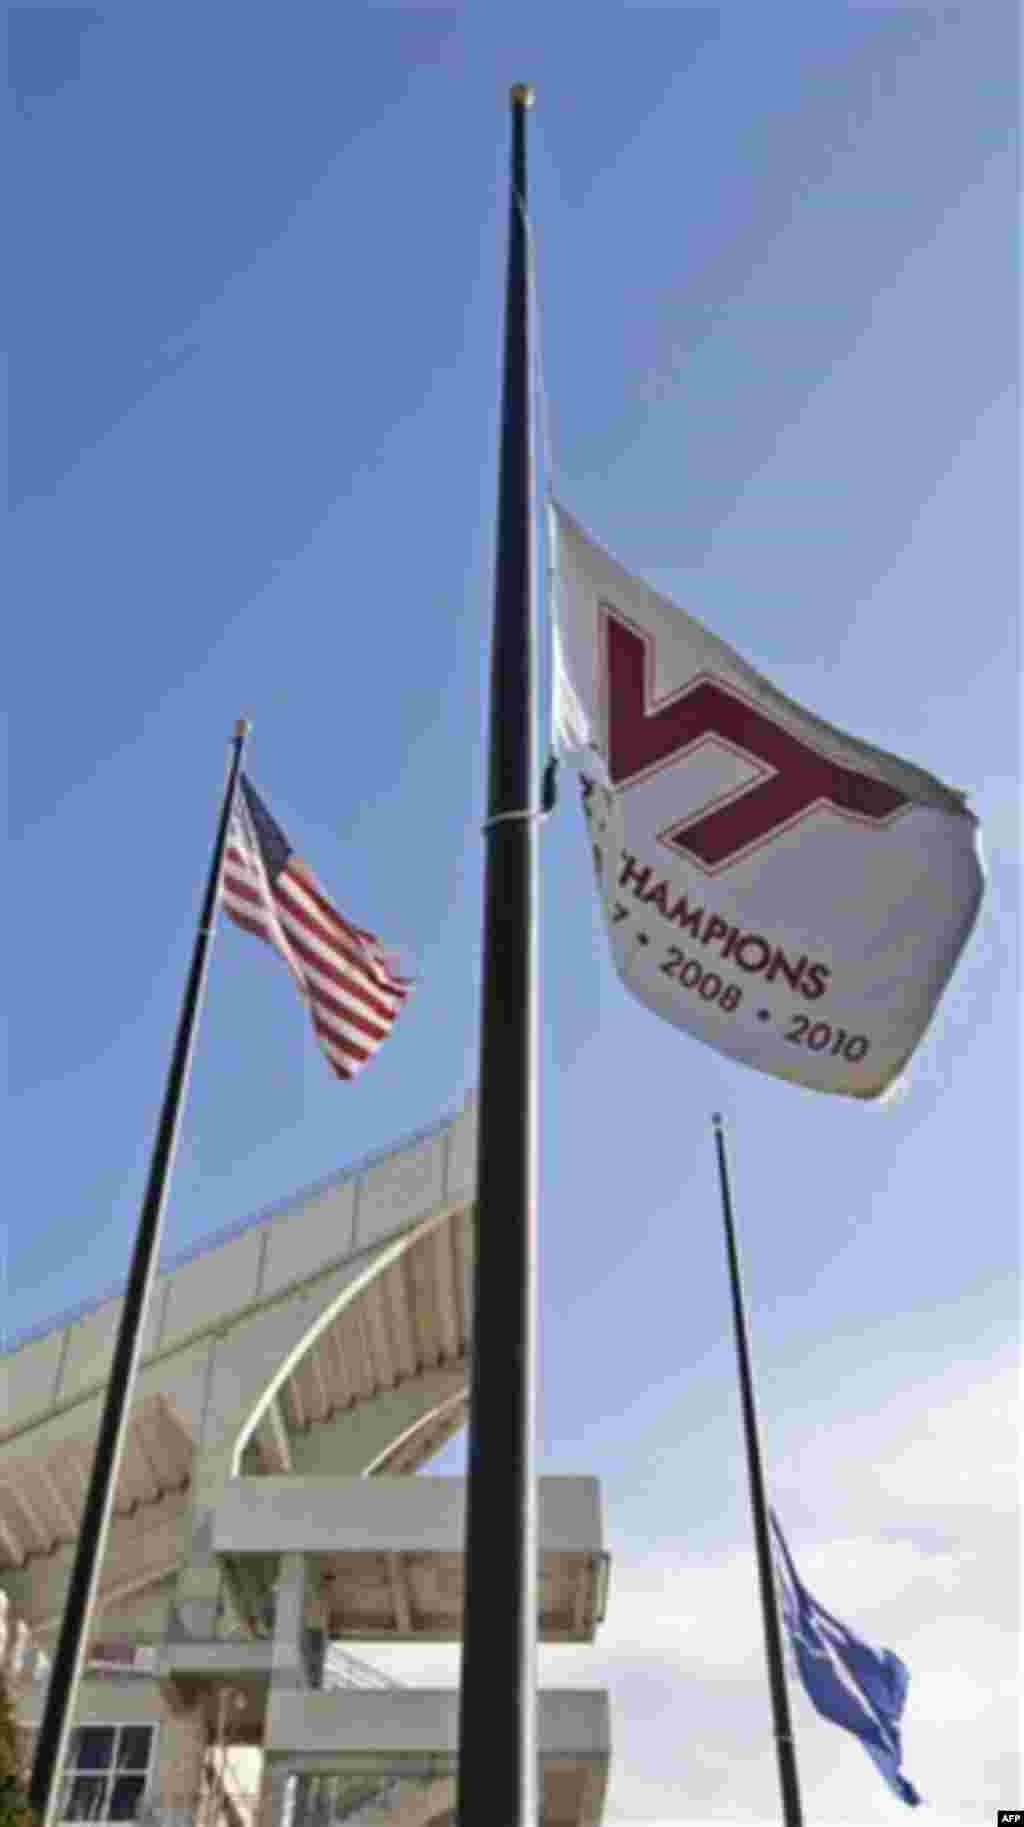 A Virginia Tech flag and the state of Virginia flag fly at half-staff in front of Lane Stadium on the campus of Virginia Tech in Blacksburg, Va., Friday, Dec. 9, 2011. A Virginia Tech police officer was shot and killed on campus Thursday. (AP Photo/Steve